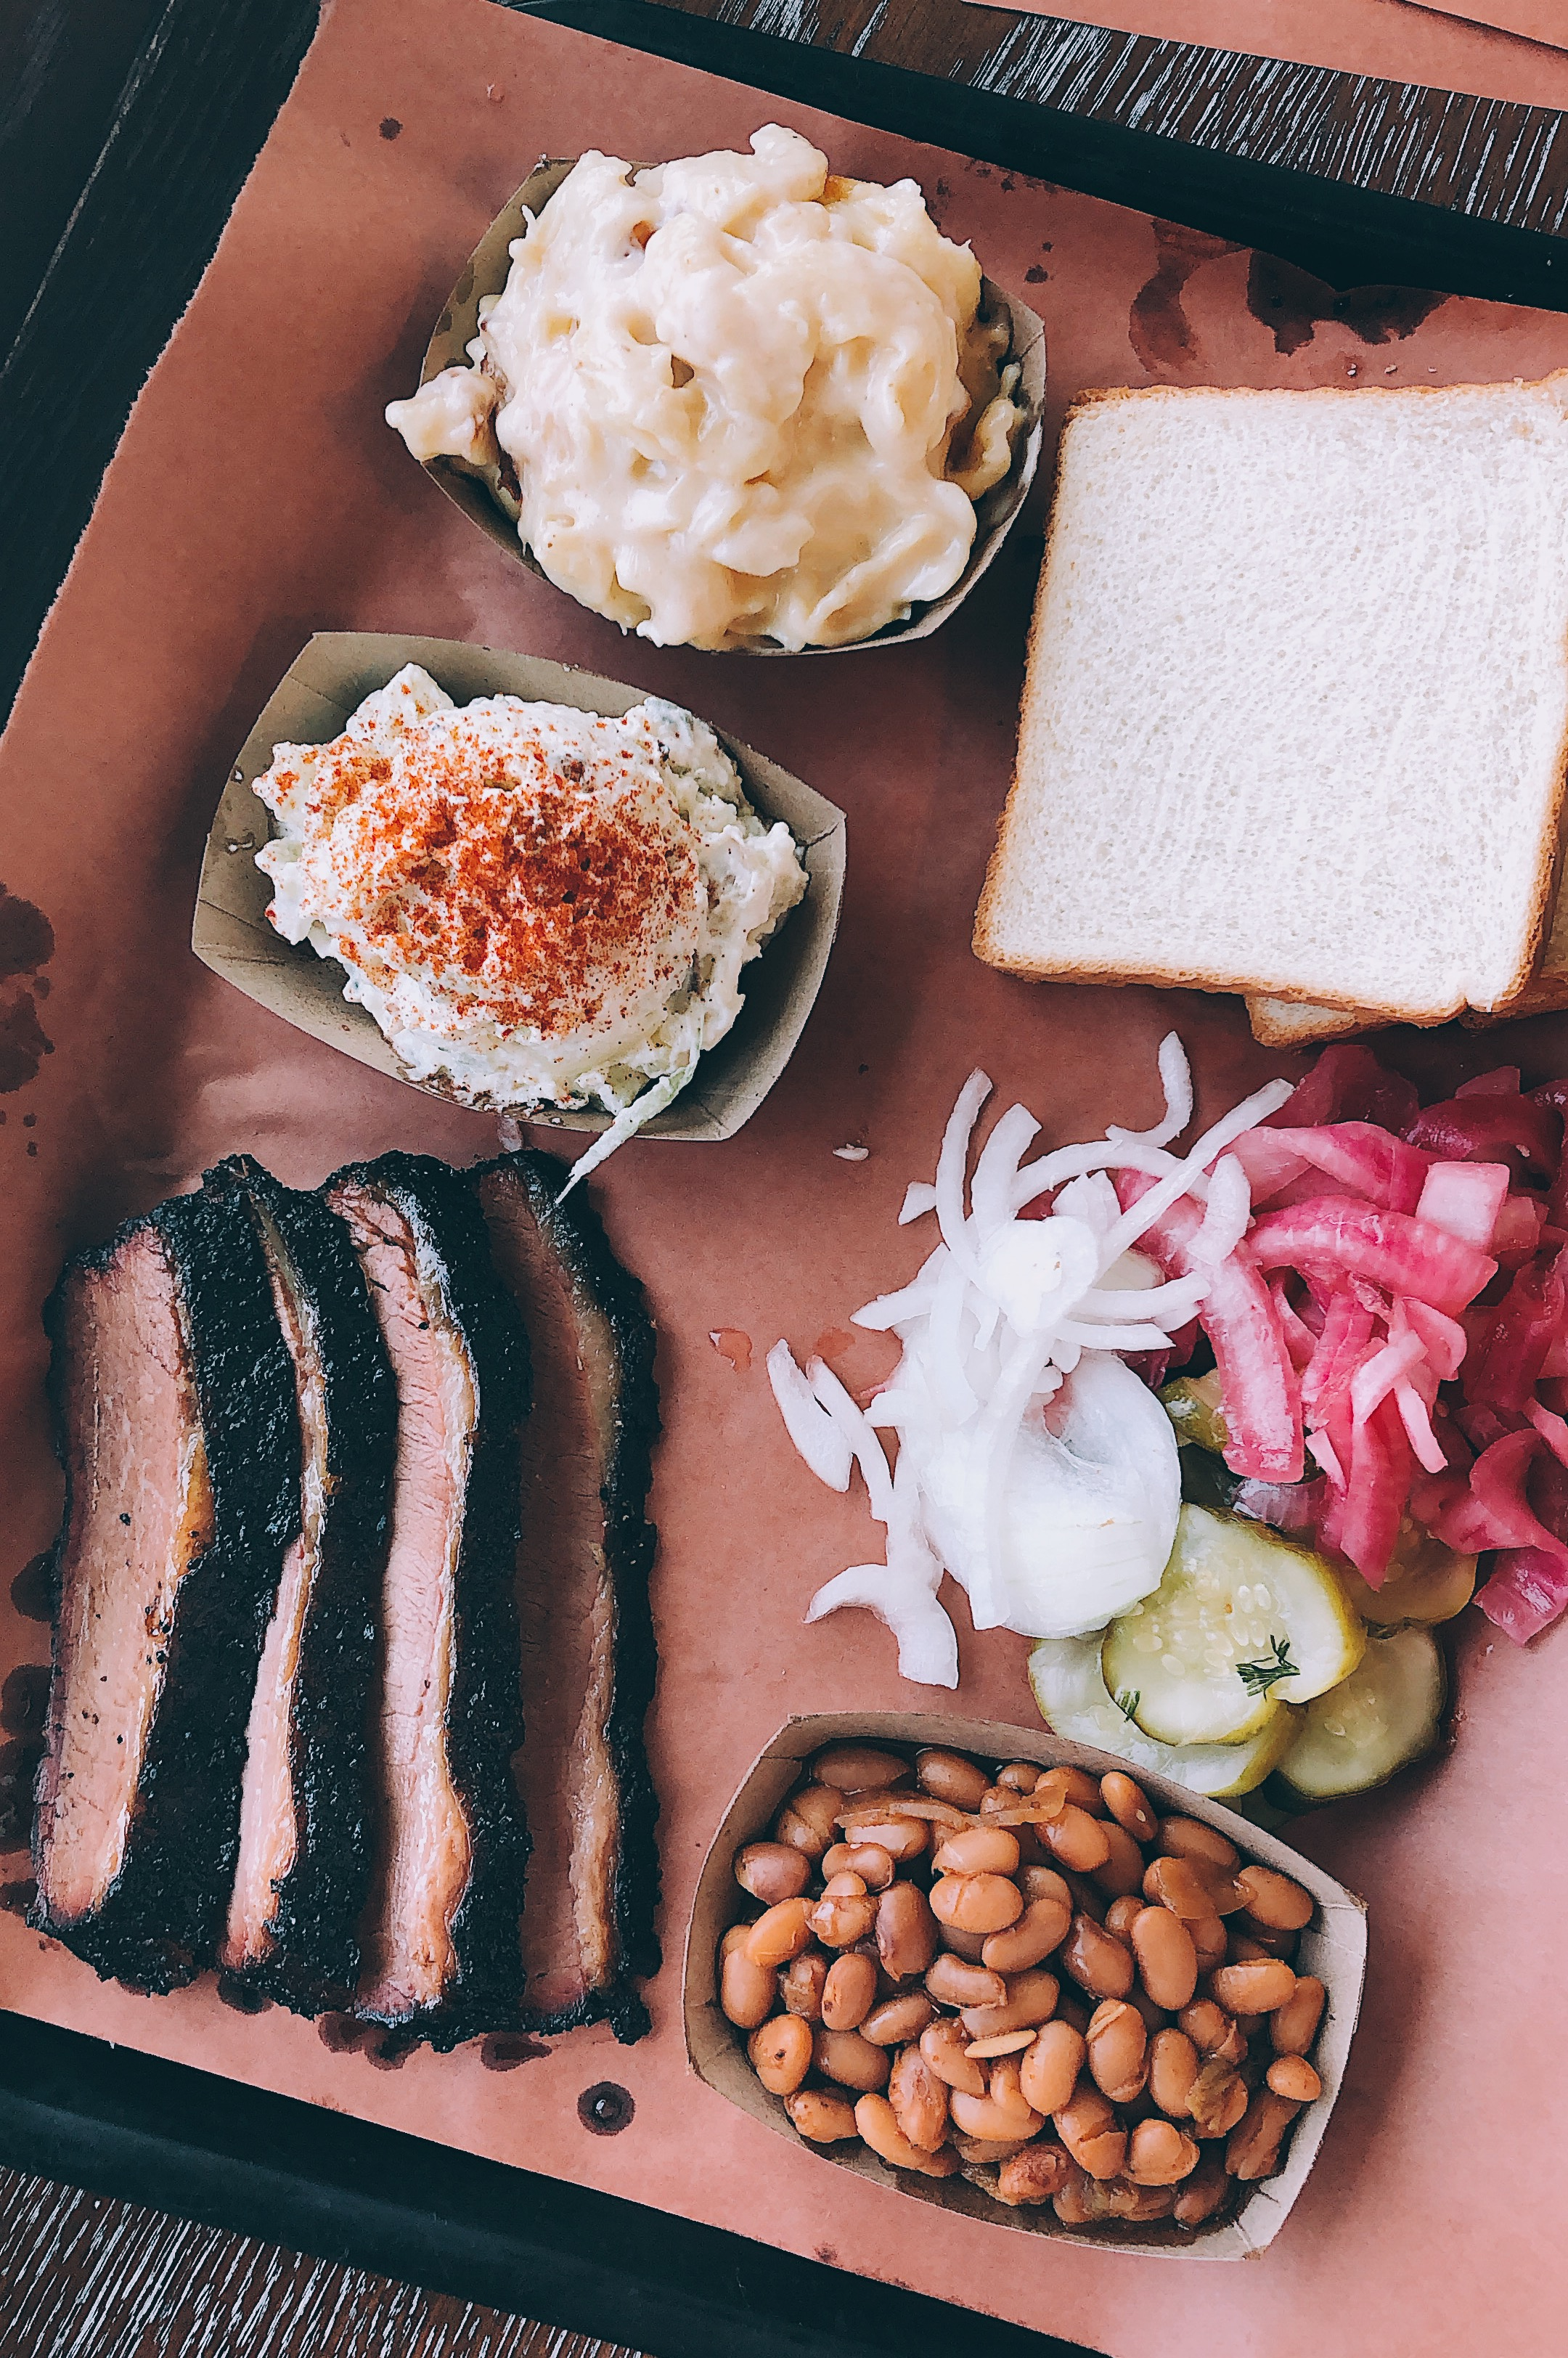 lewis barbecue charleston south carolina